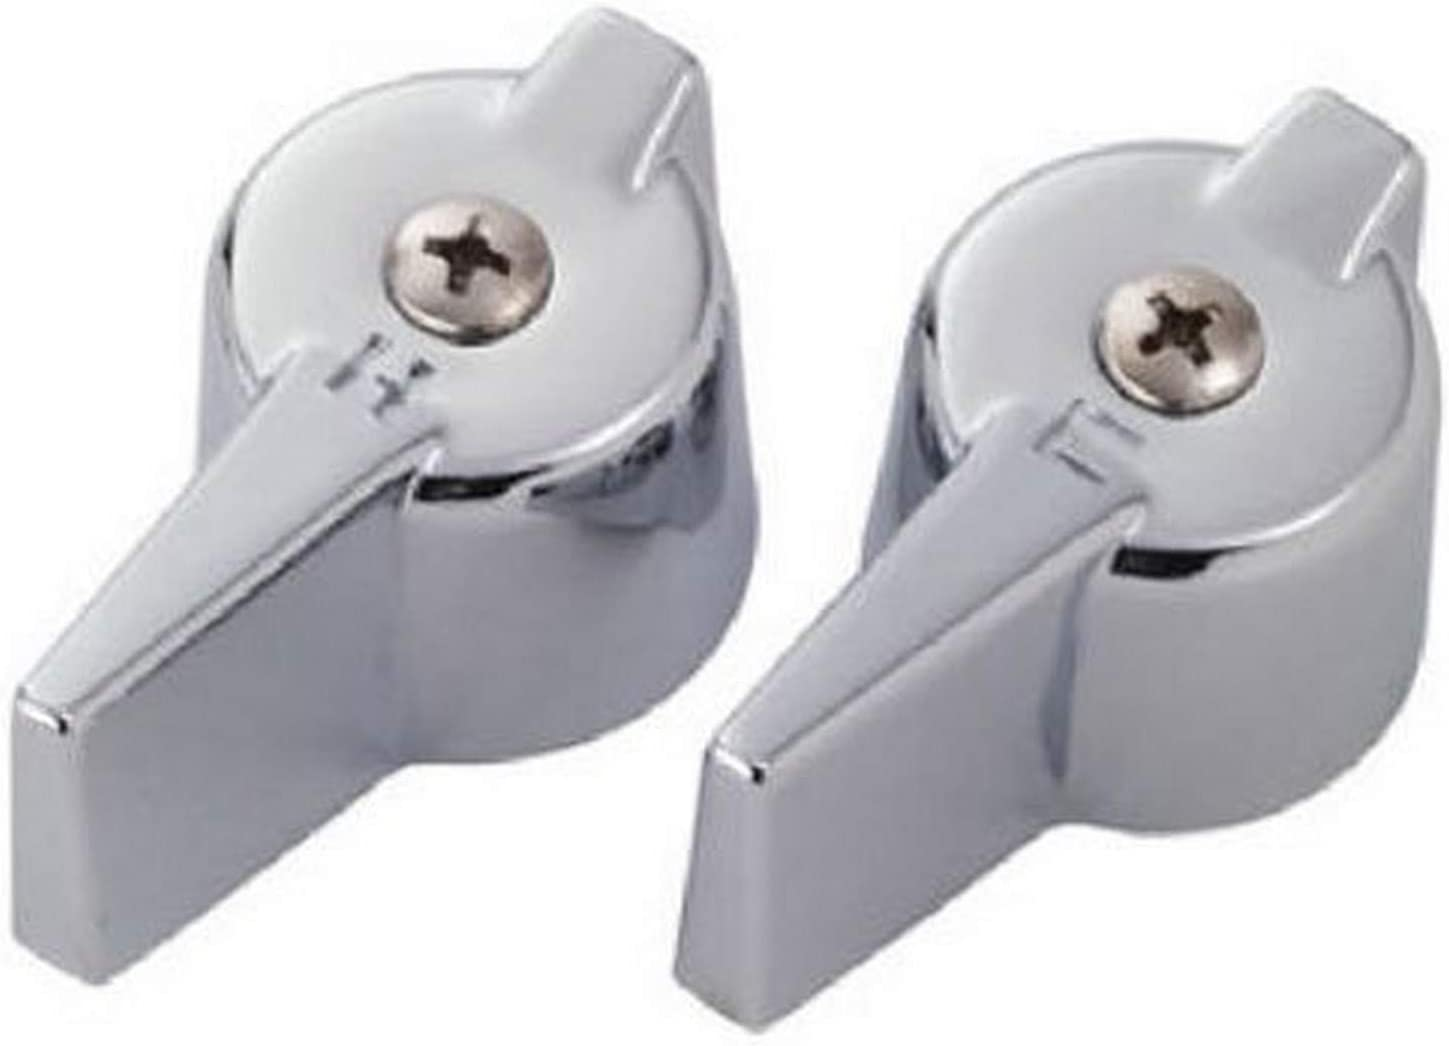 BrassCraft SH2385 Gerber Faucets Handle for Ki Soldering and Lavatory Pair It is very popular